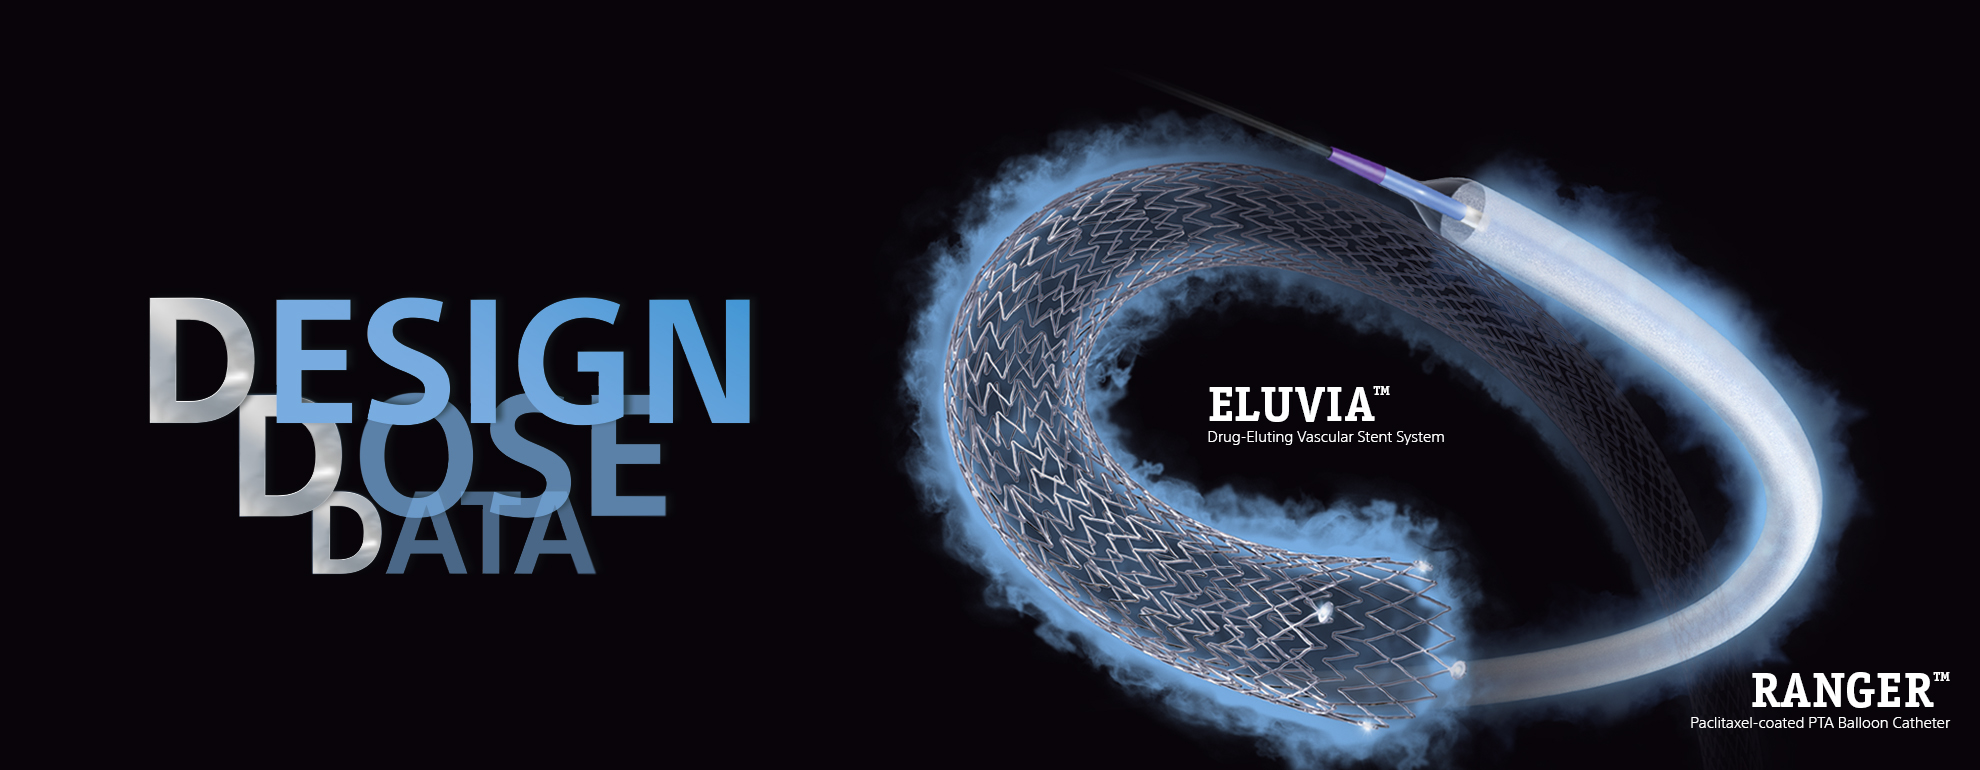 Eluvia™ and Ranger™ are 3D:  3 times Different from other devices.